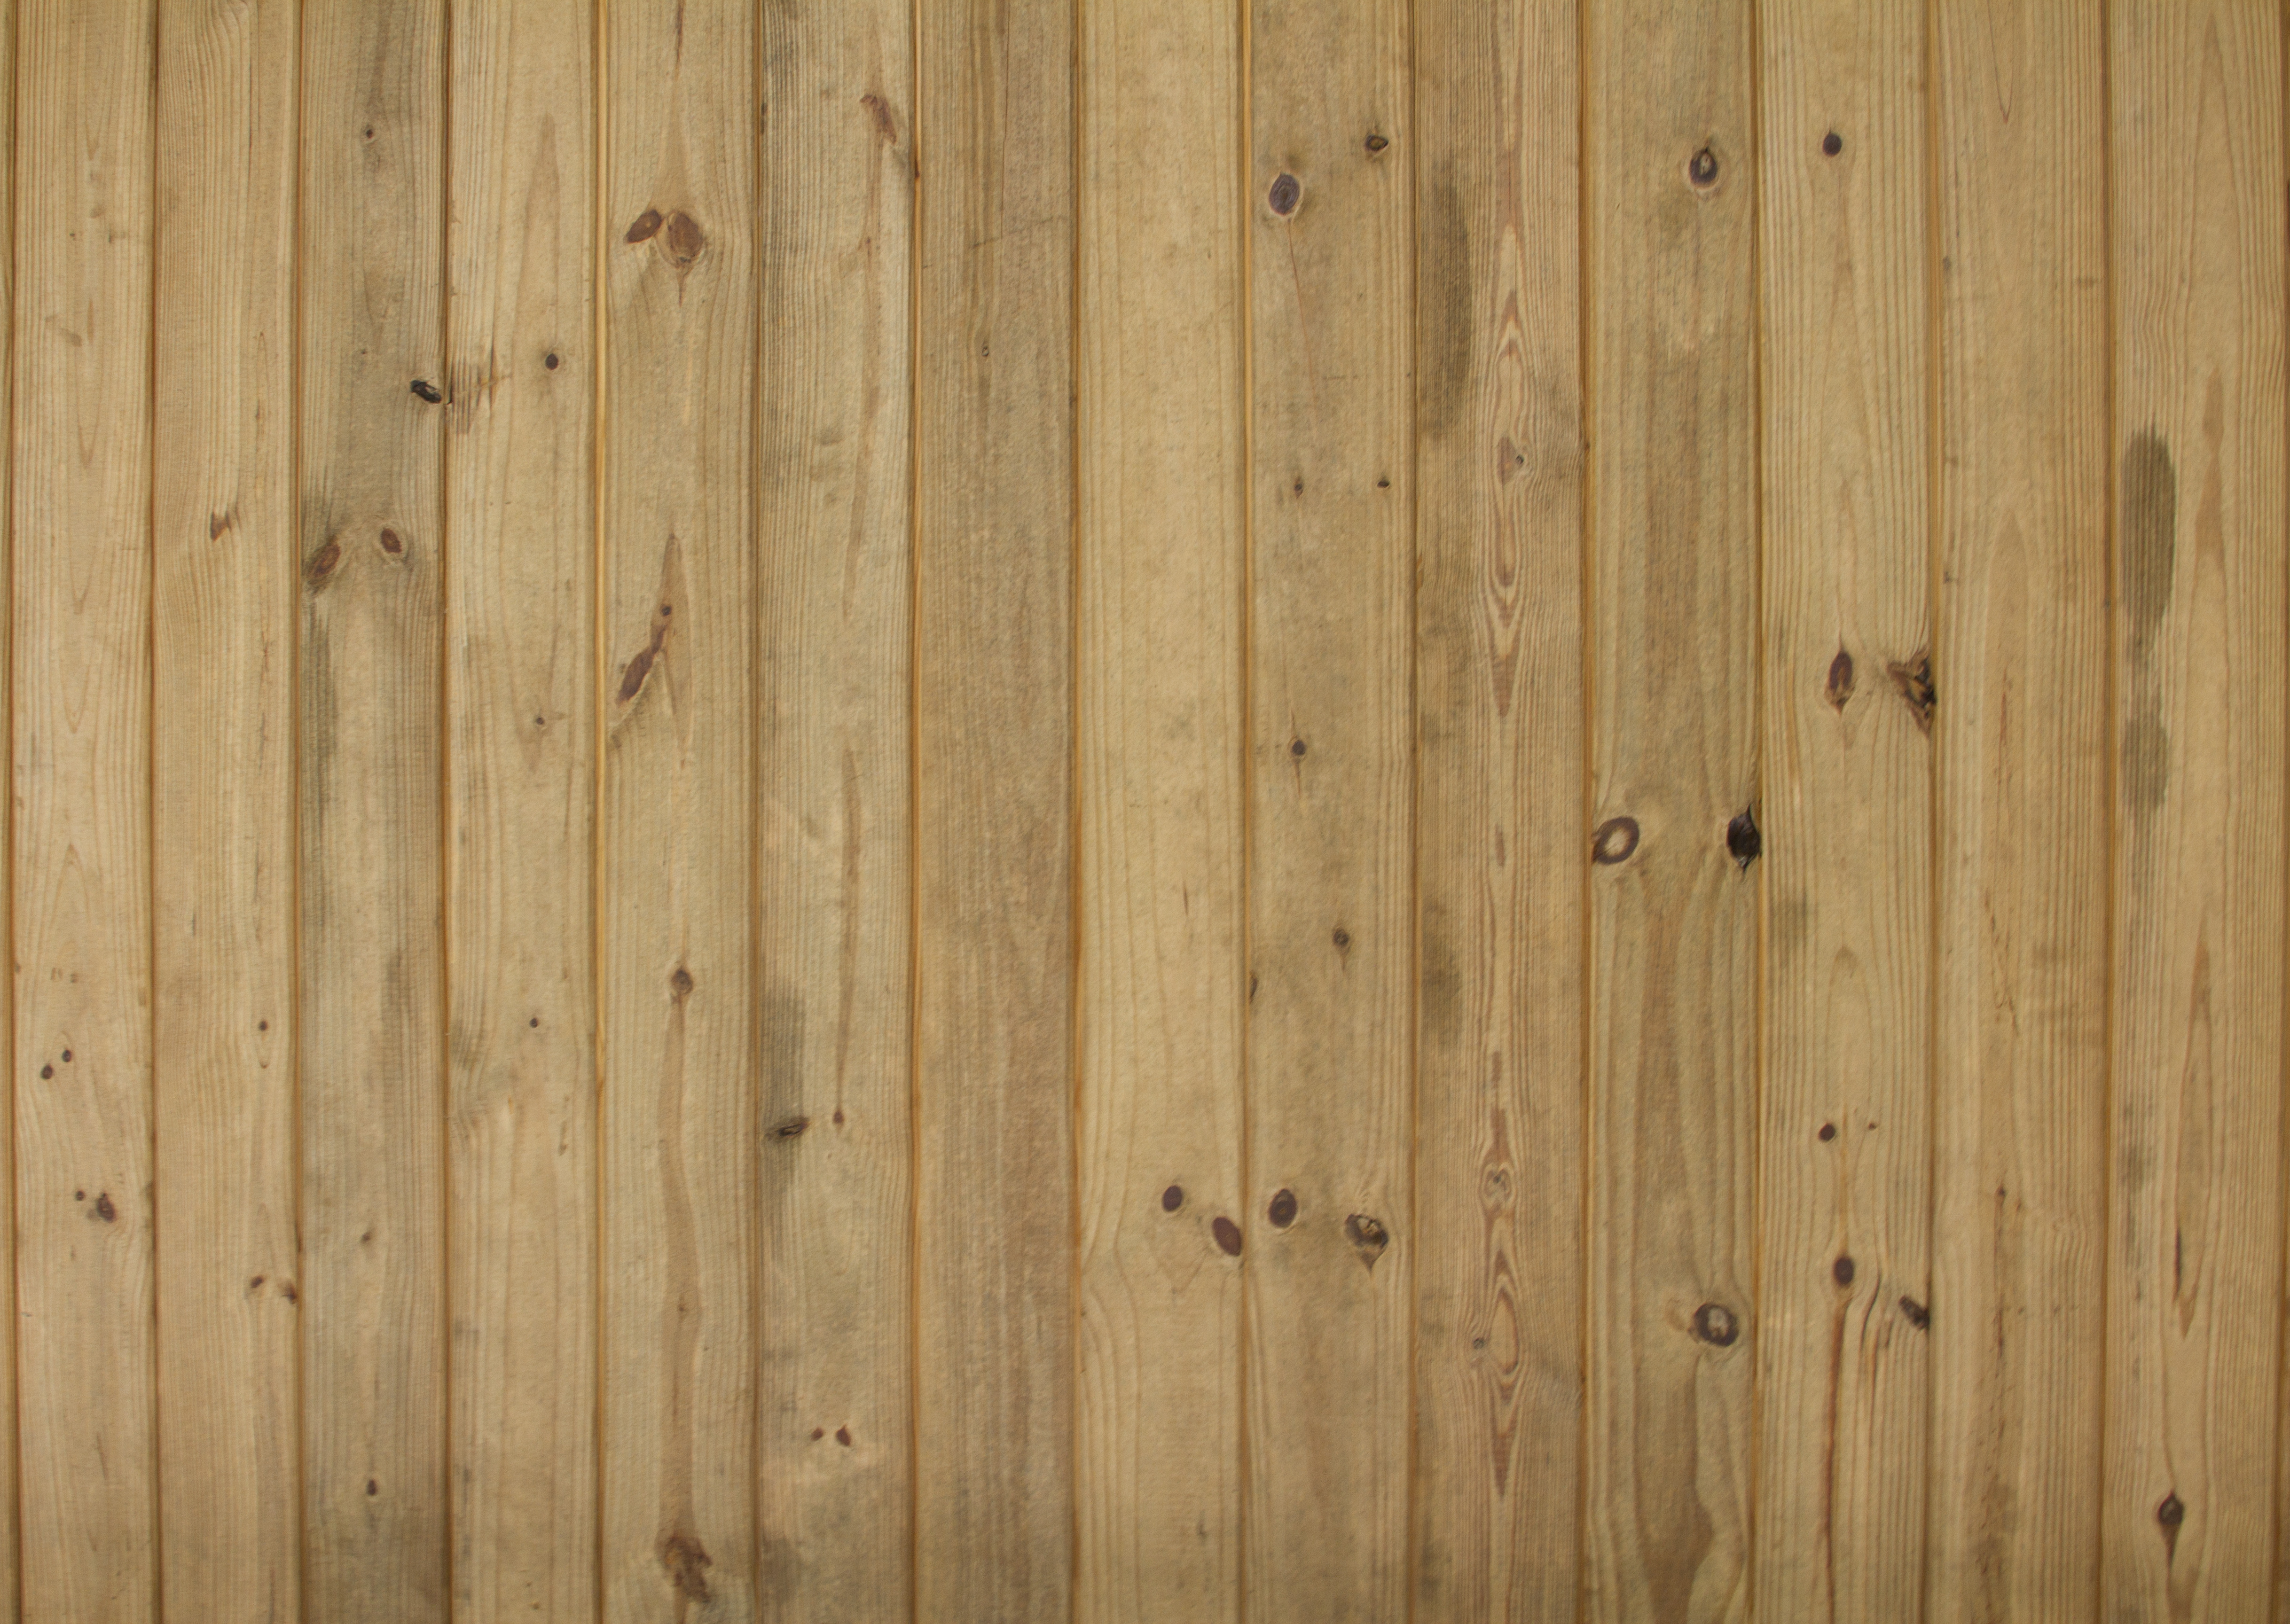 Free photo: Wooden Panel Texture - Brown, Natural, Panels - Free Download - Jooinn